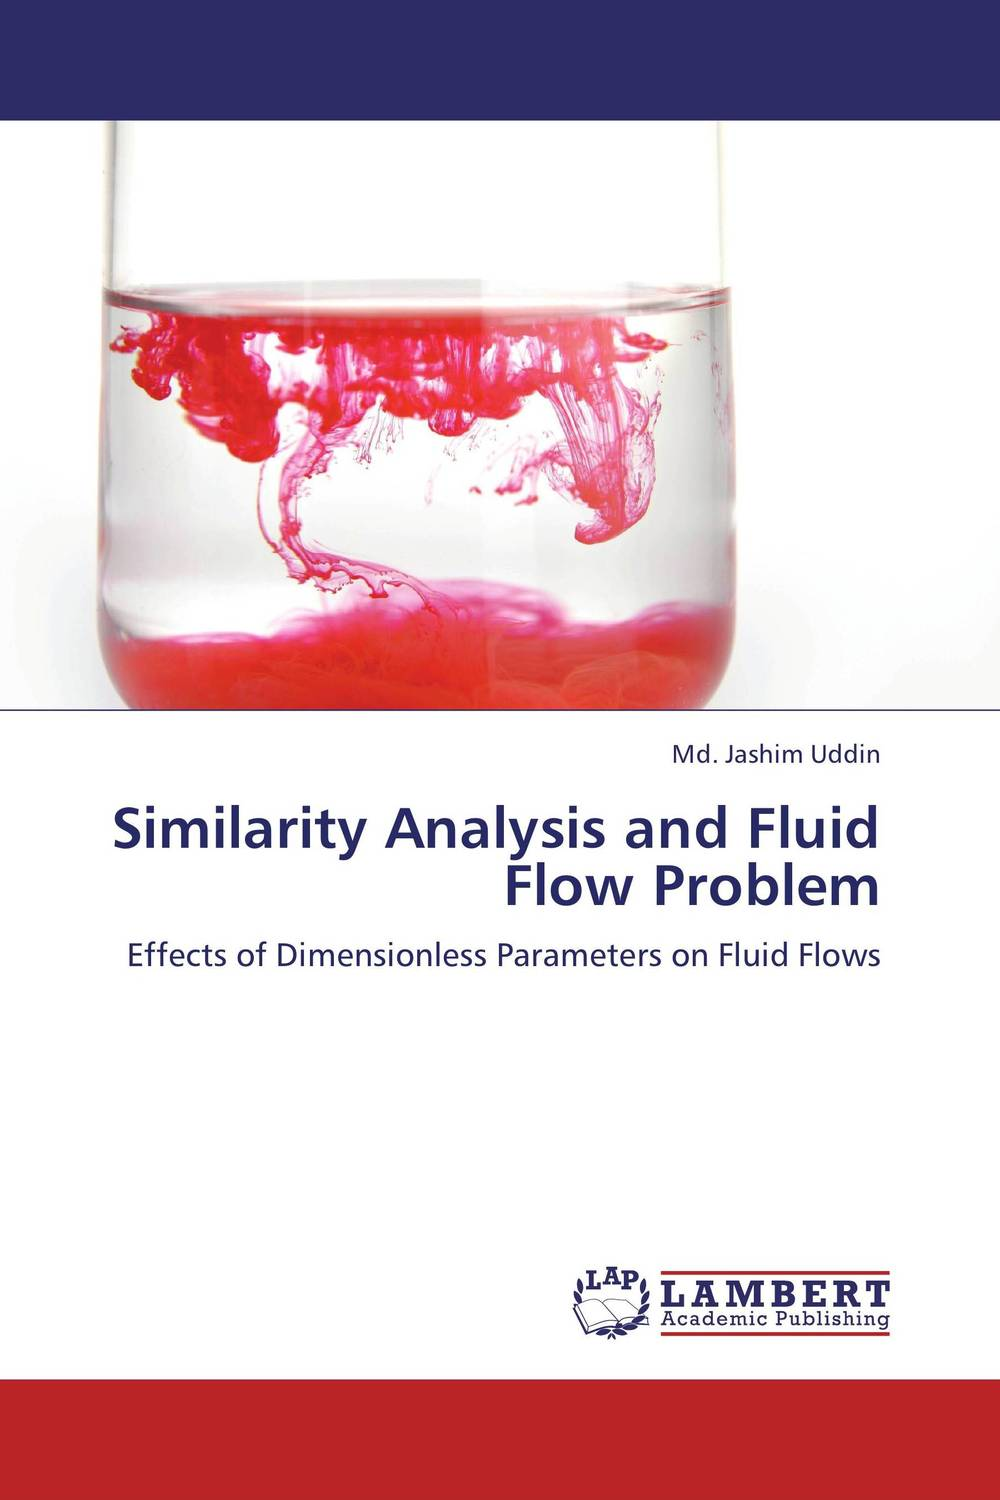 Similarity Analysis and Fluid Flow Problem